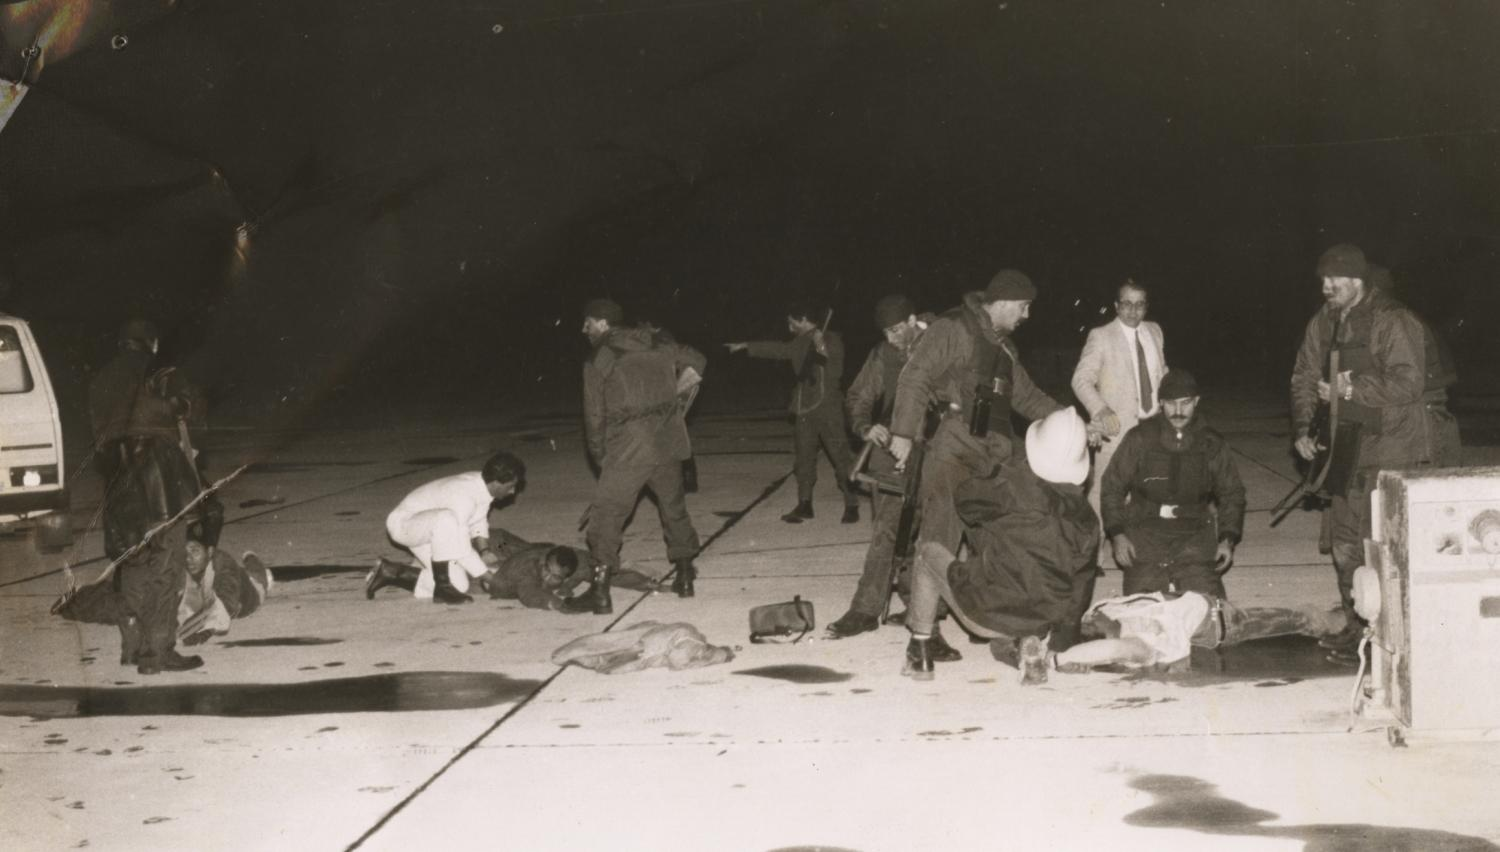 Police inspect the passengers after the bloodbath.